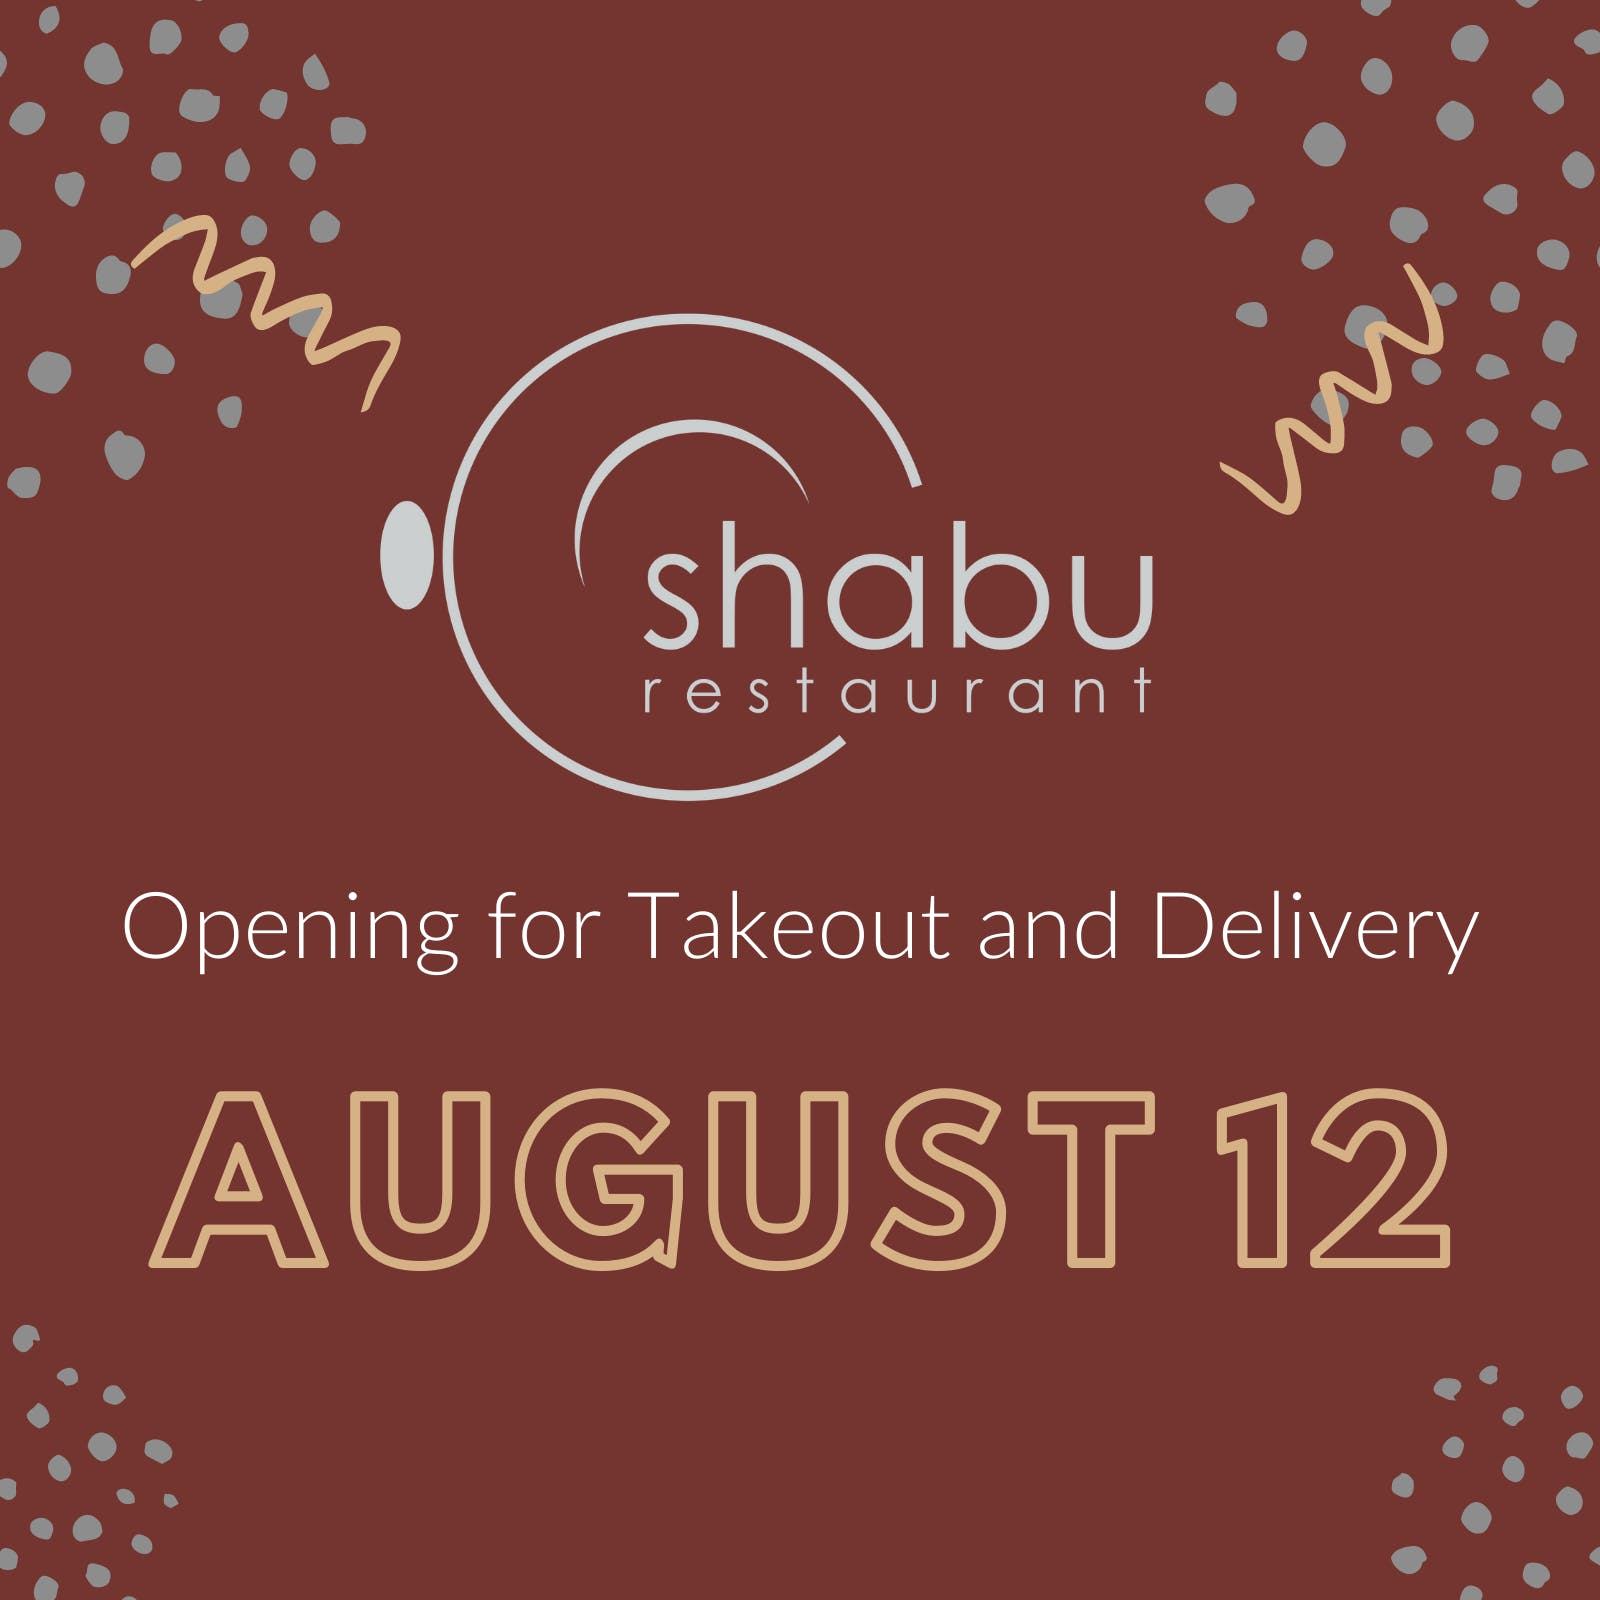 Shabu Restaurant will reopen for takeout and delivery on August 12!